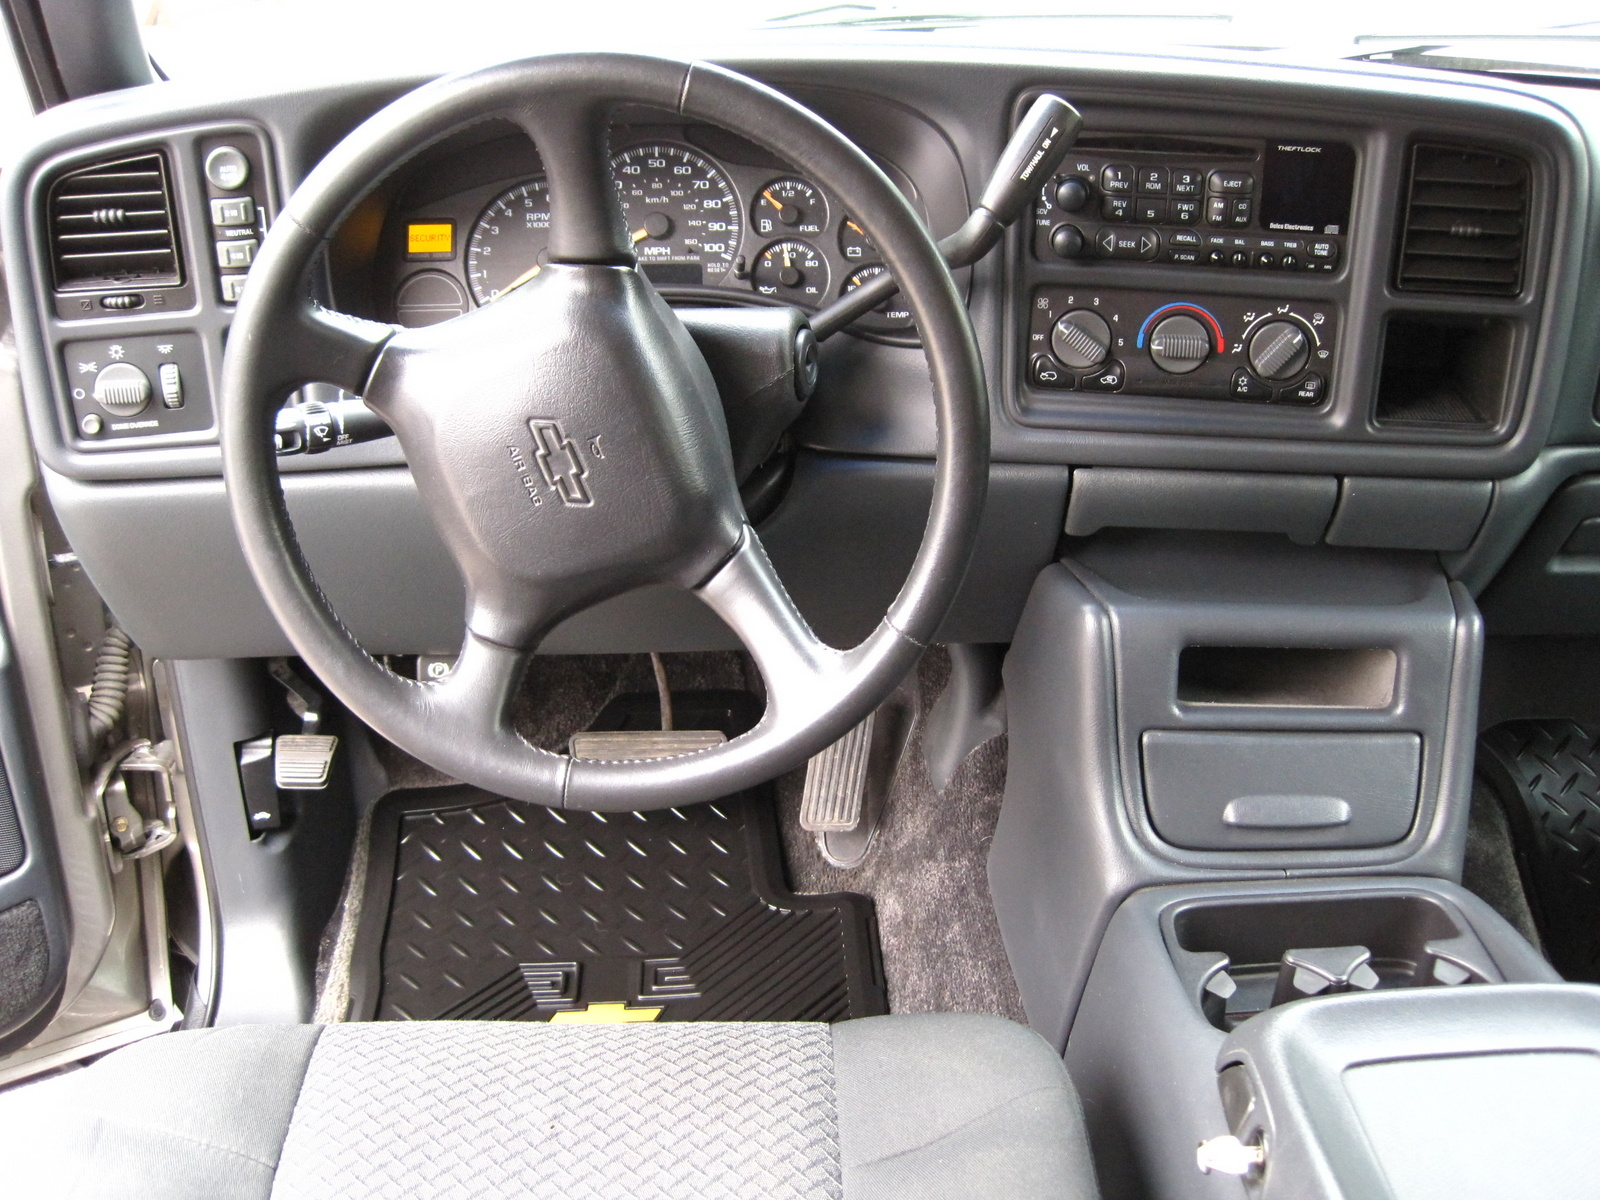 2002 Chevrolet Avalanche - Pictures